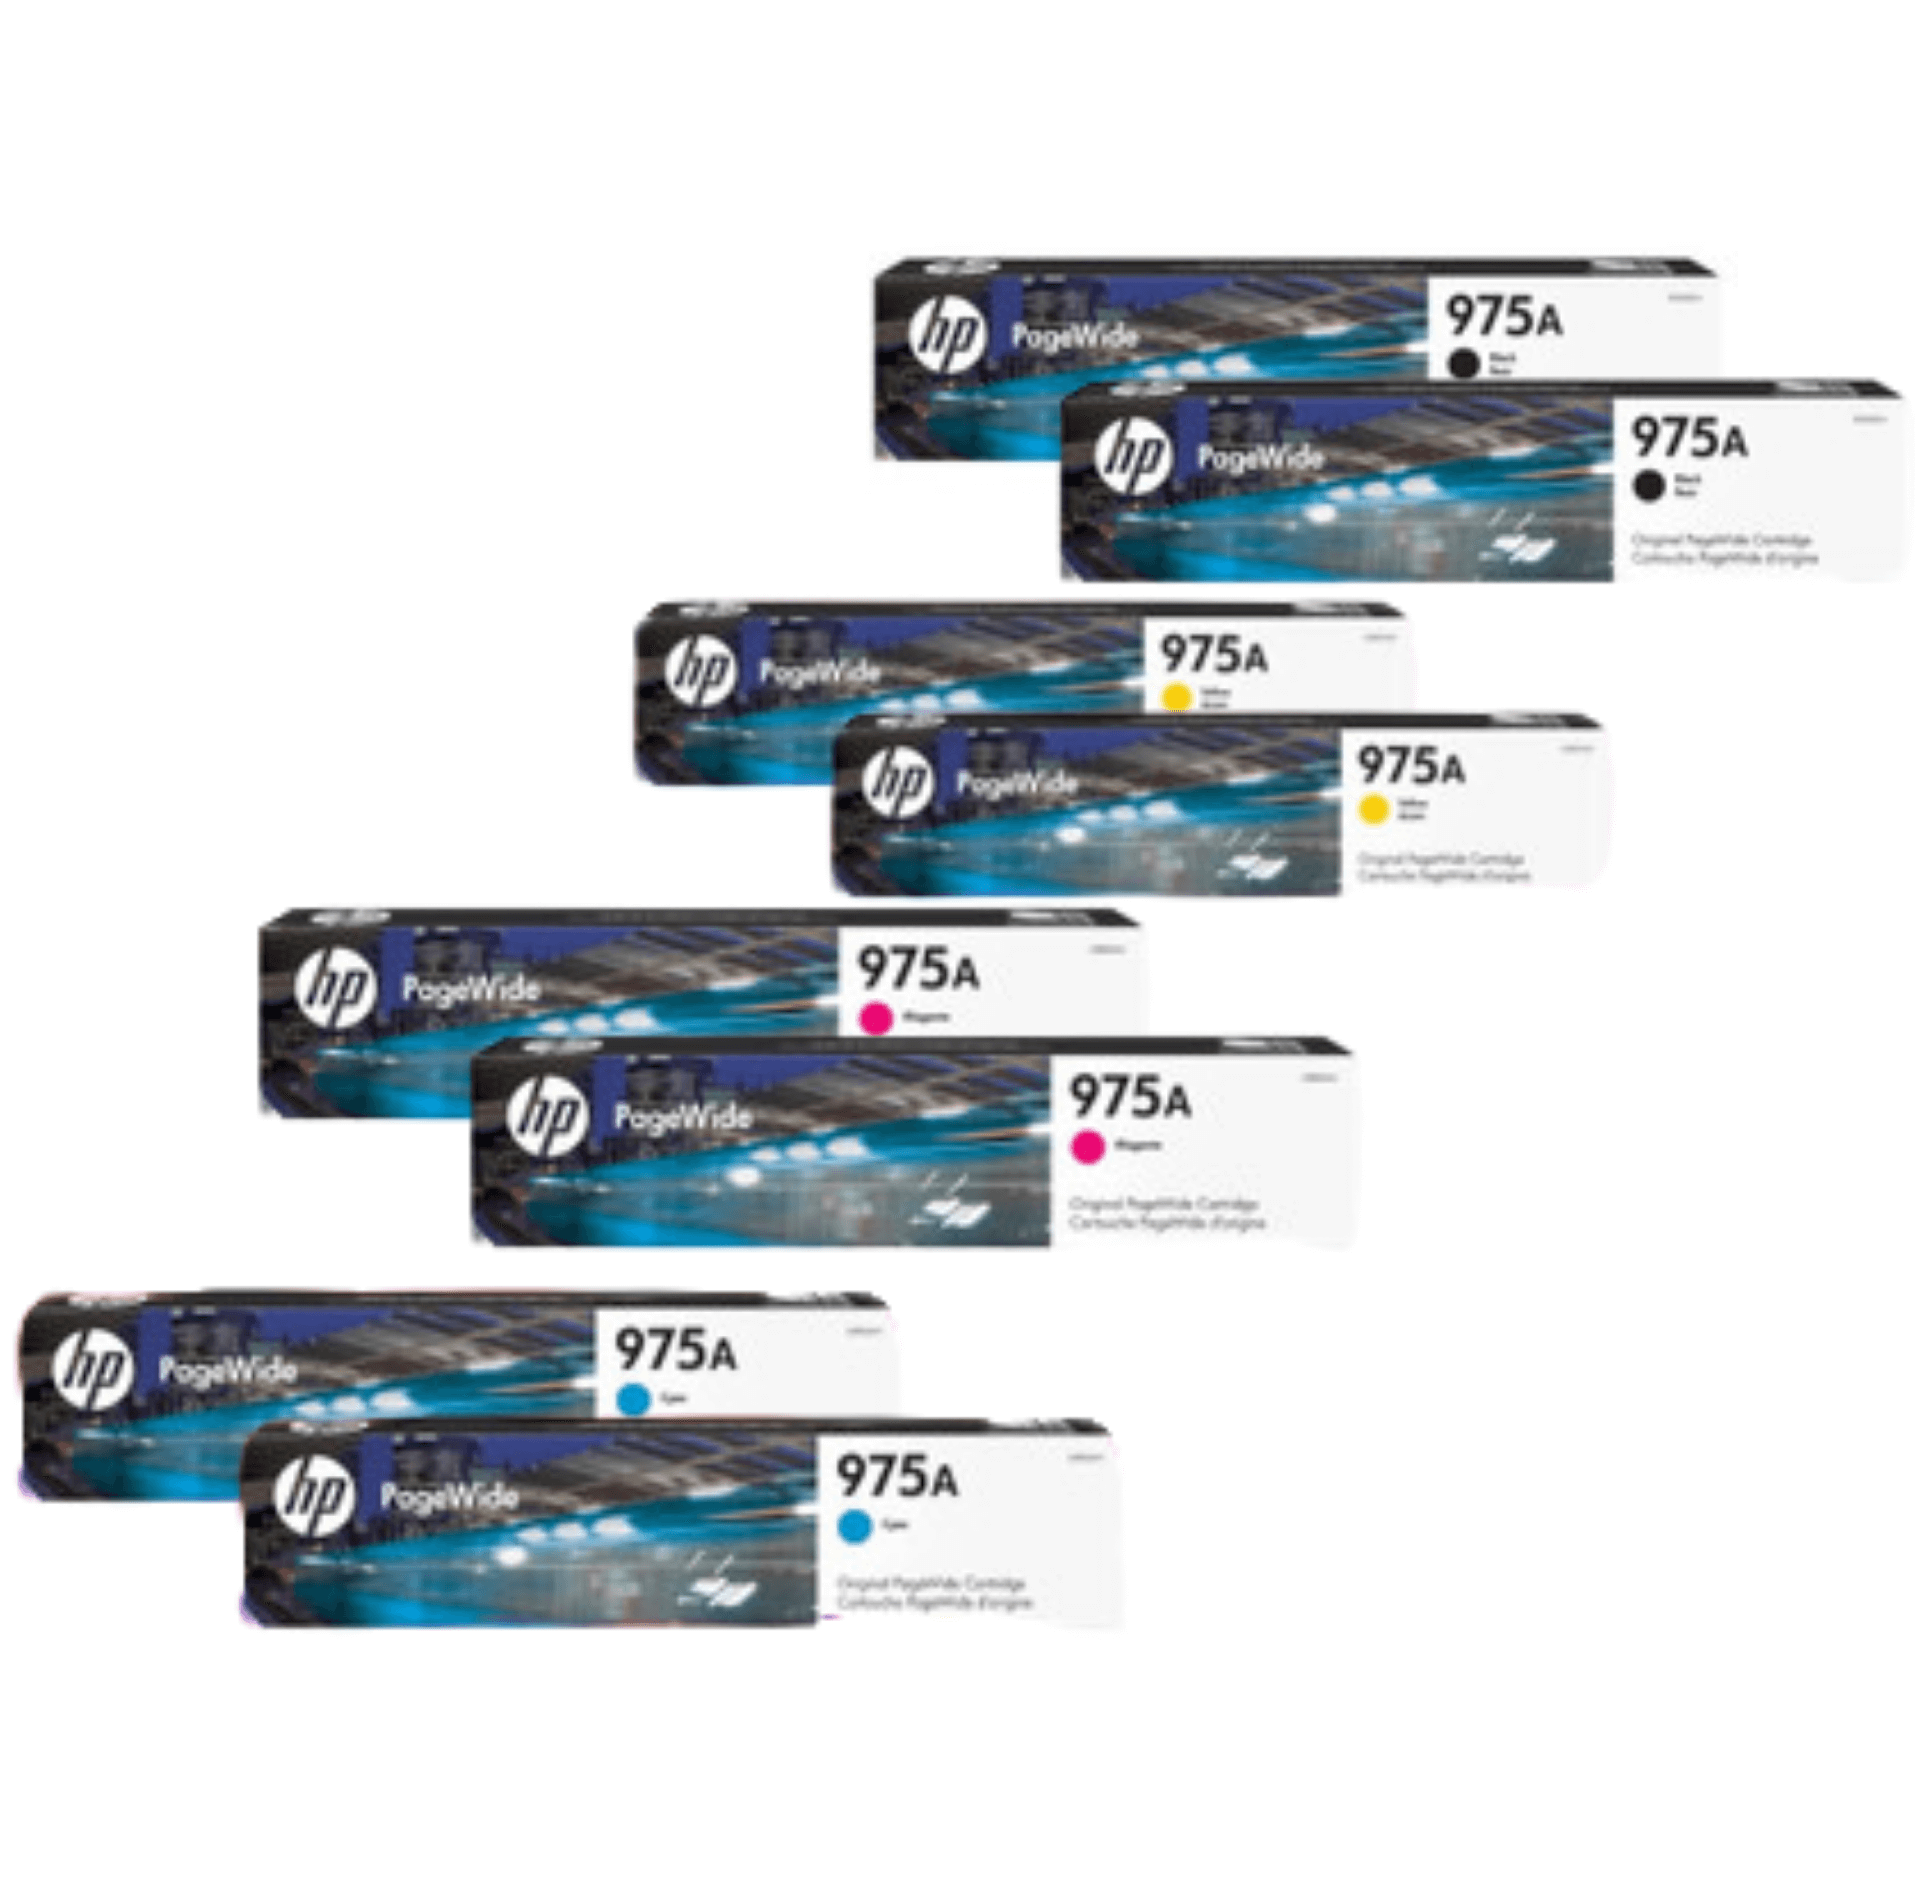 HP 975A Ink Cartridge Value Pack - Includes: [2 x Black, Cyan, Magenta, Yellow]